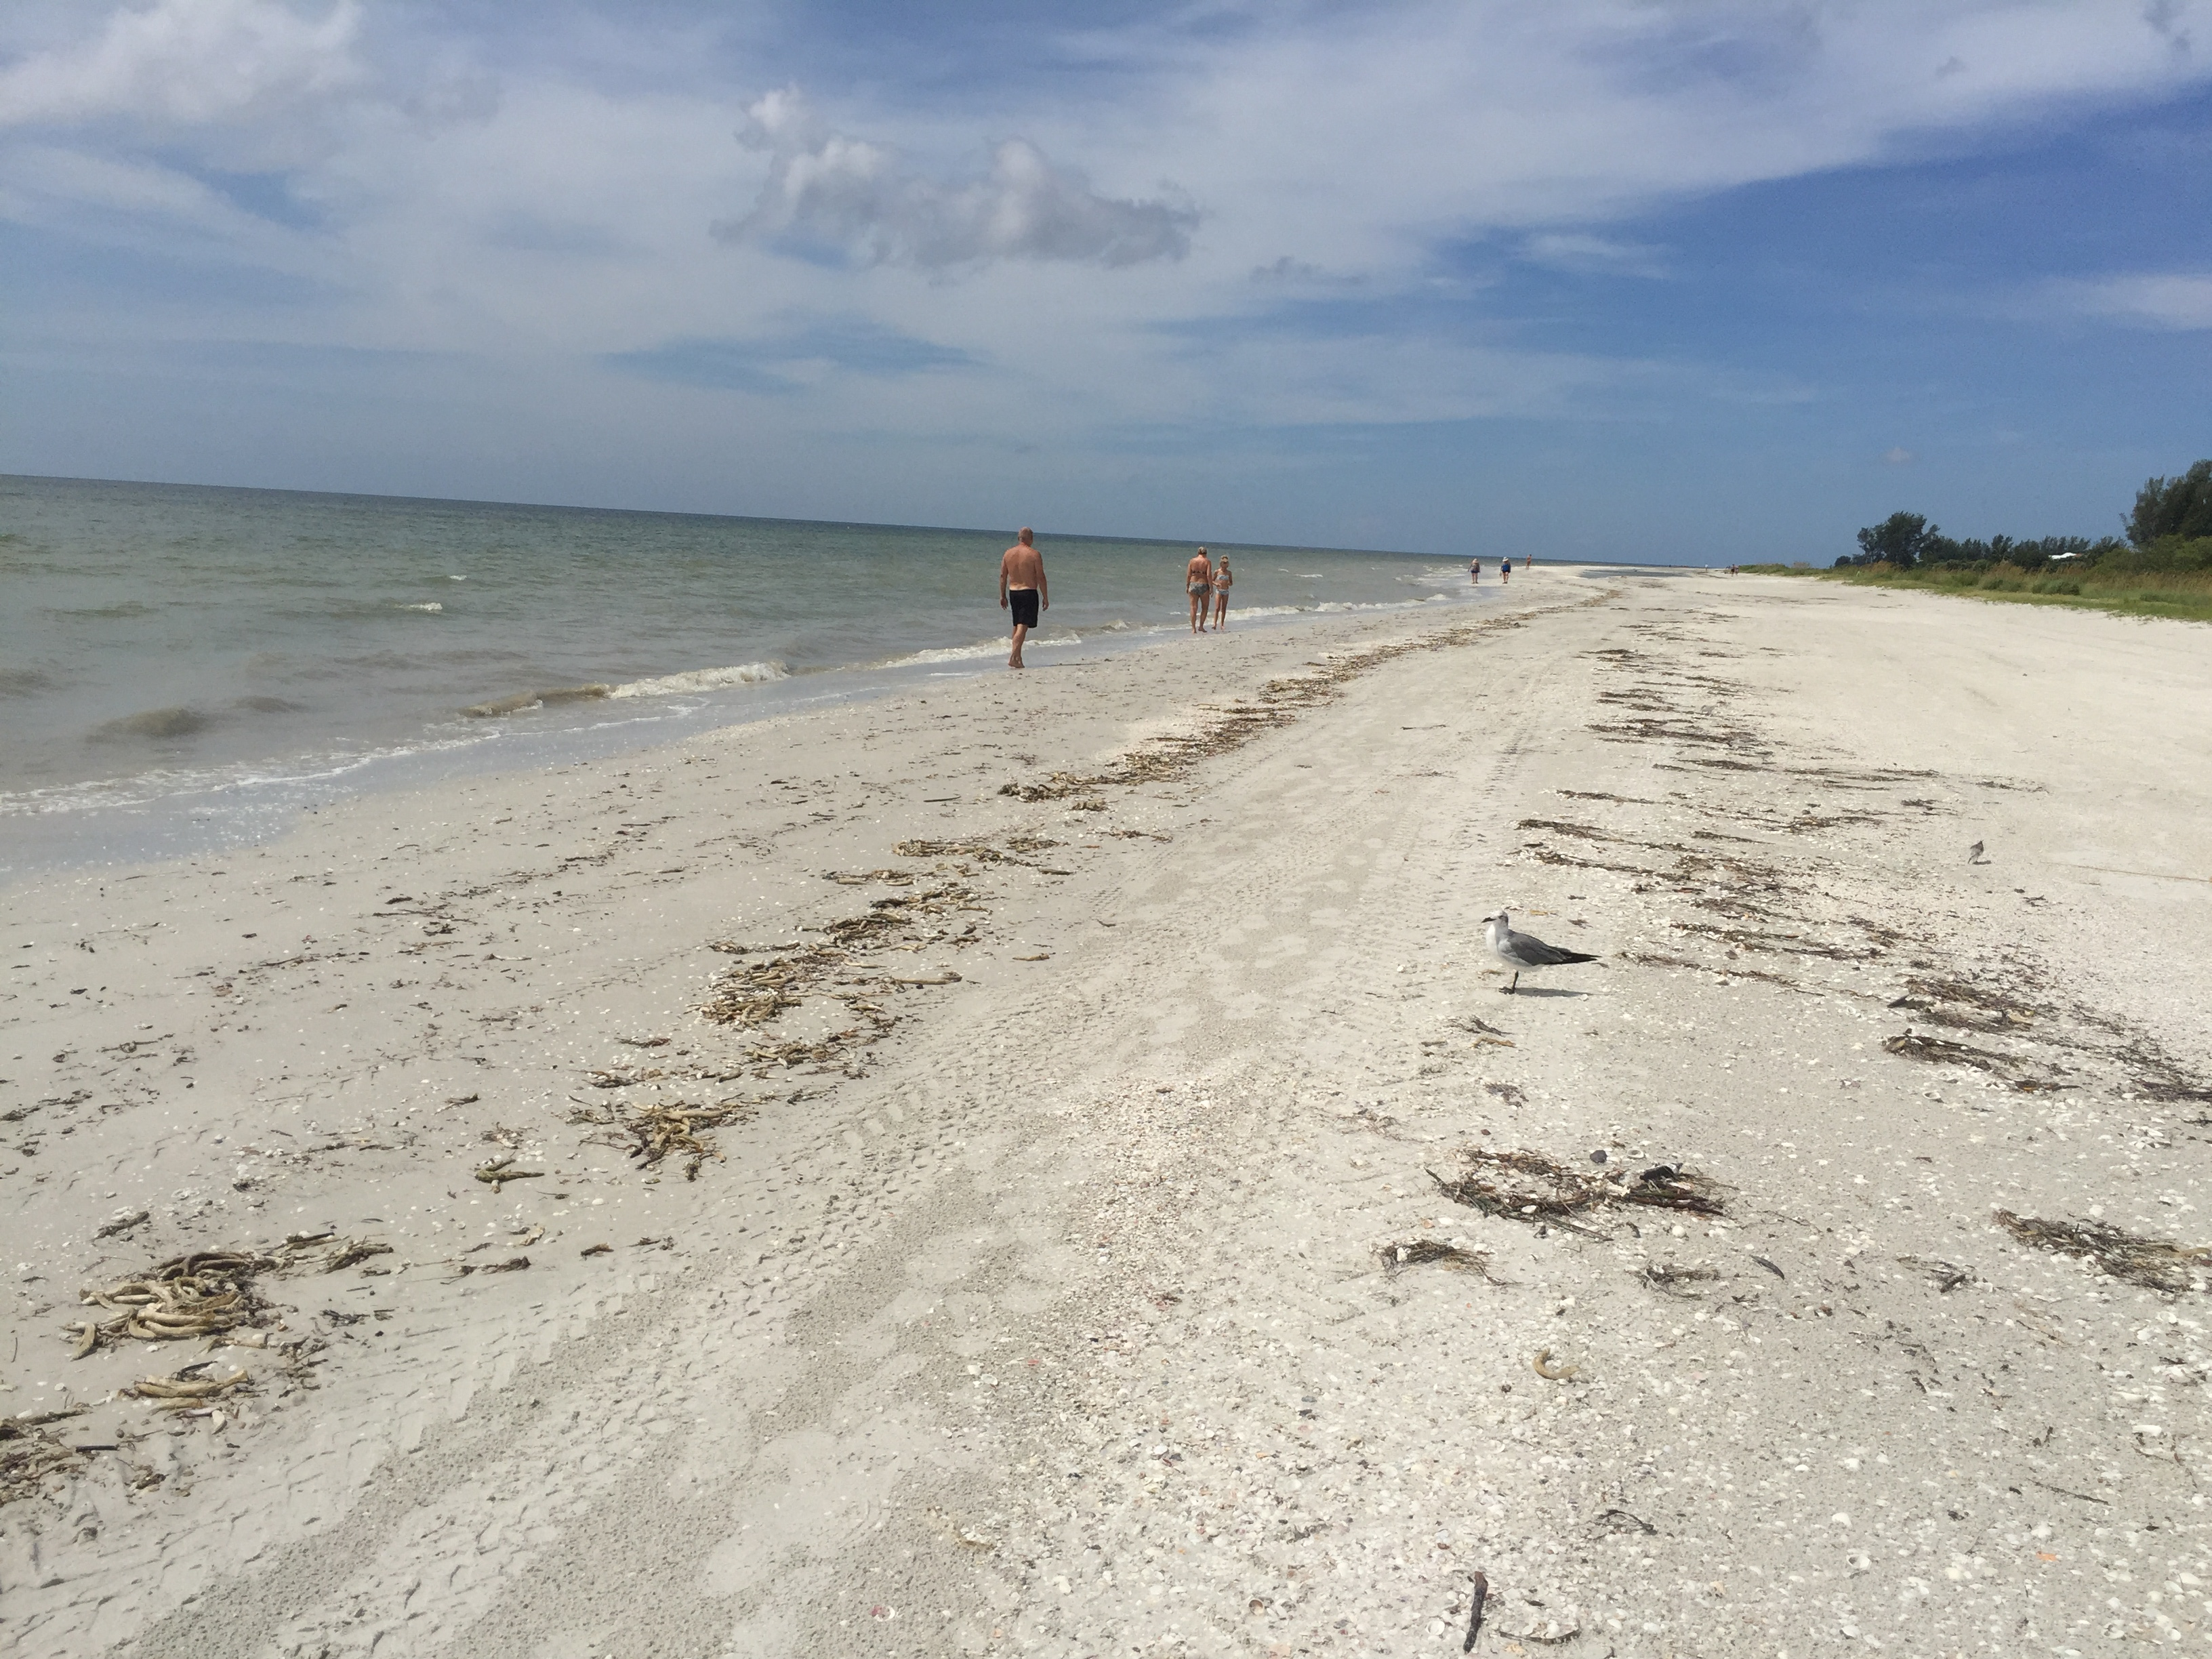 Looking for Shells on Sanibel Island, Florida